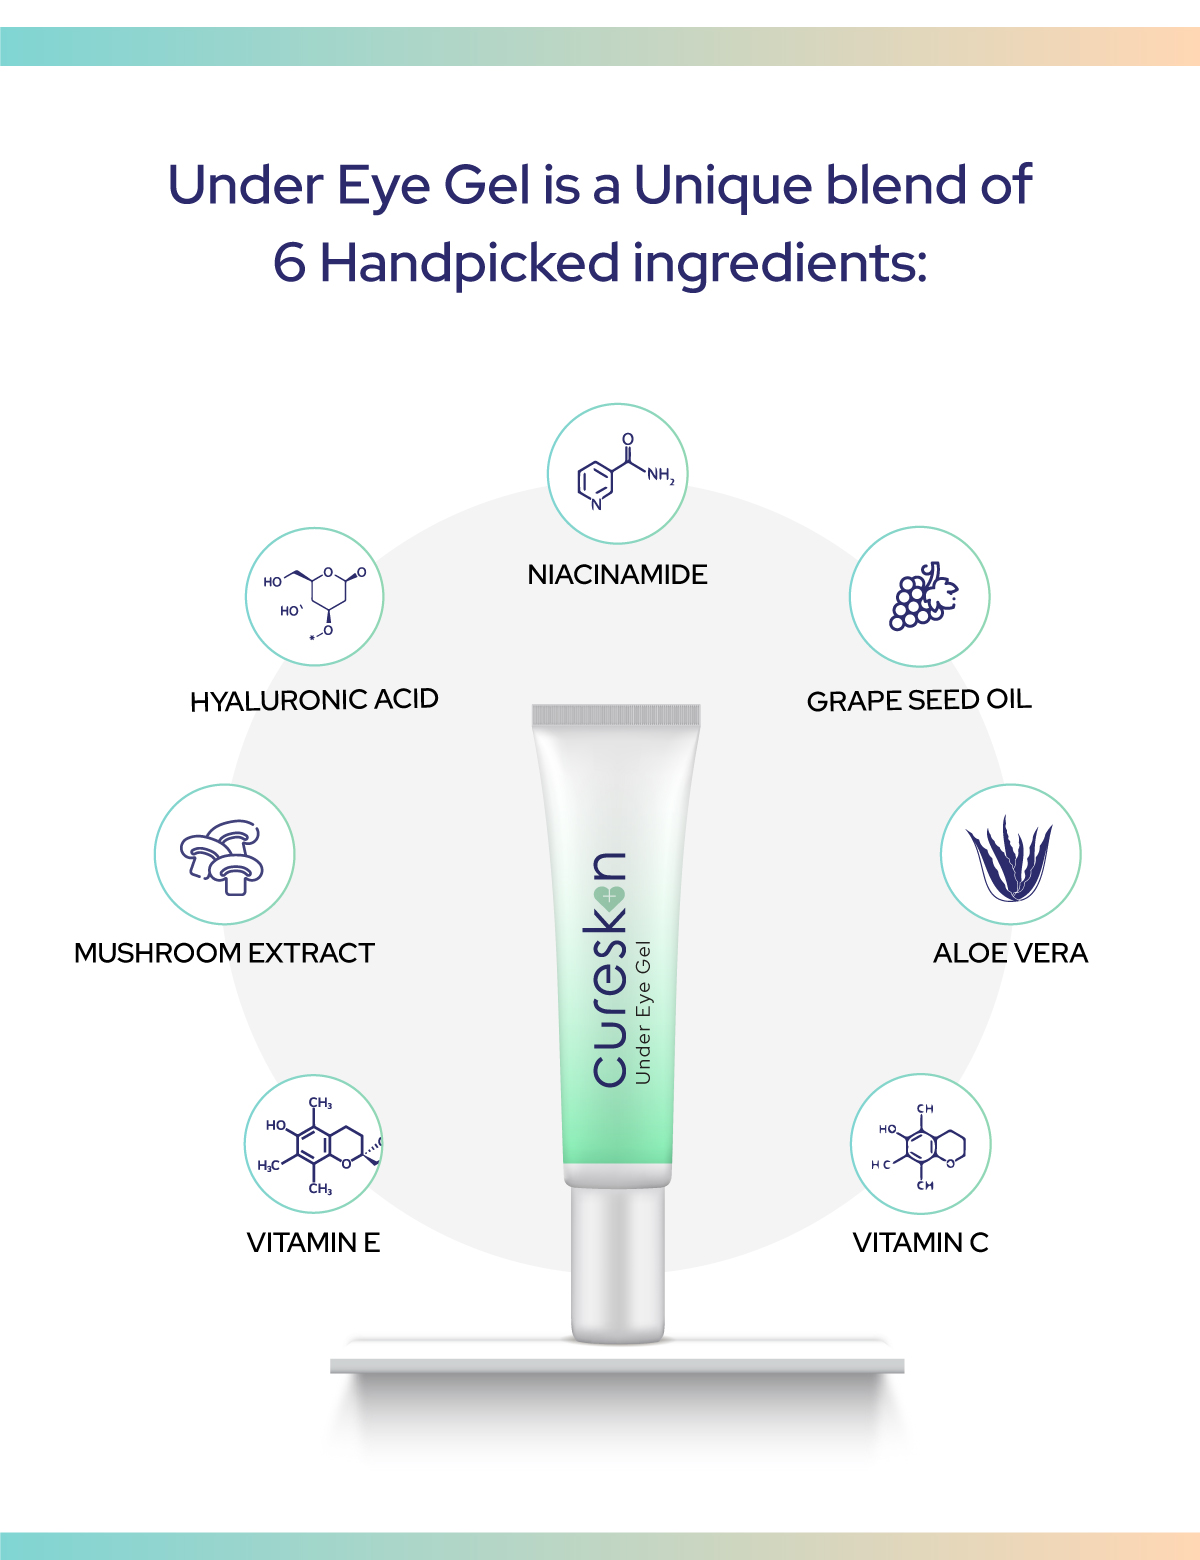 Contains the goodness of 6 handpicked ingredients, tested by dermatologists: Niacinamide, Hyaluronic Acid, Grape Seed Oil, Mushroom Extract, Aloe Vera, Vitamin E and Vitamin C